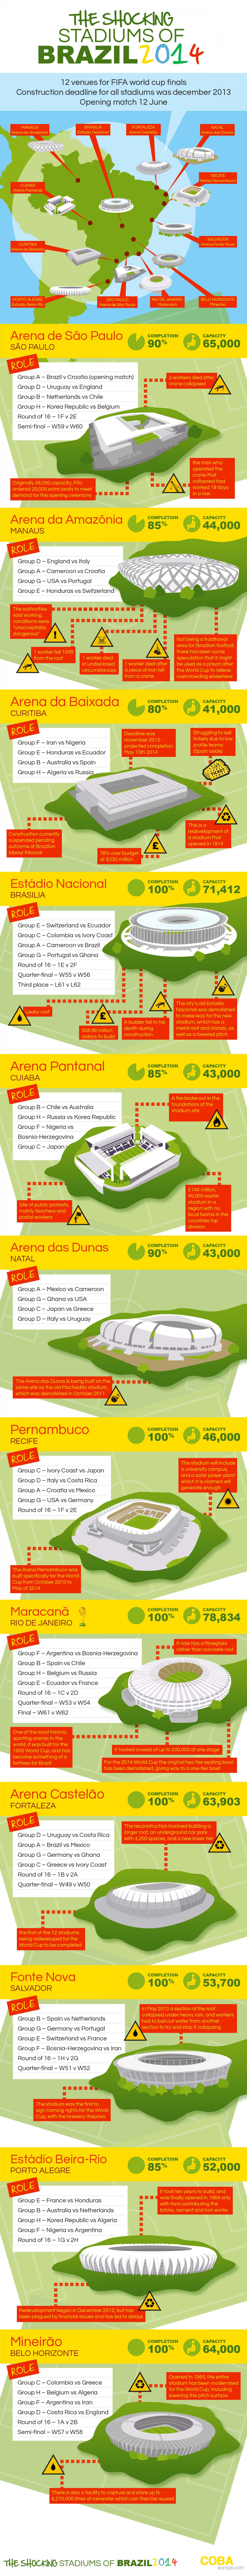 08 the-heavy-toll-of-the-stadiums-of-brazil-2014_533400d92ed06_w1500